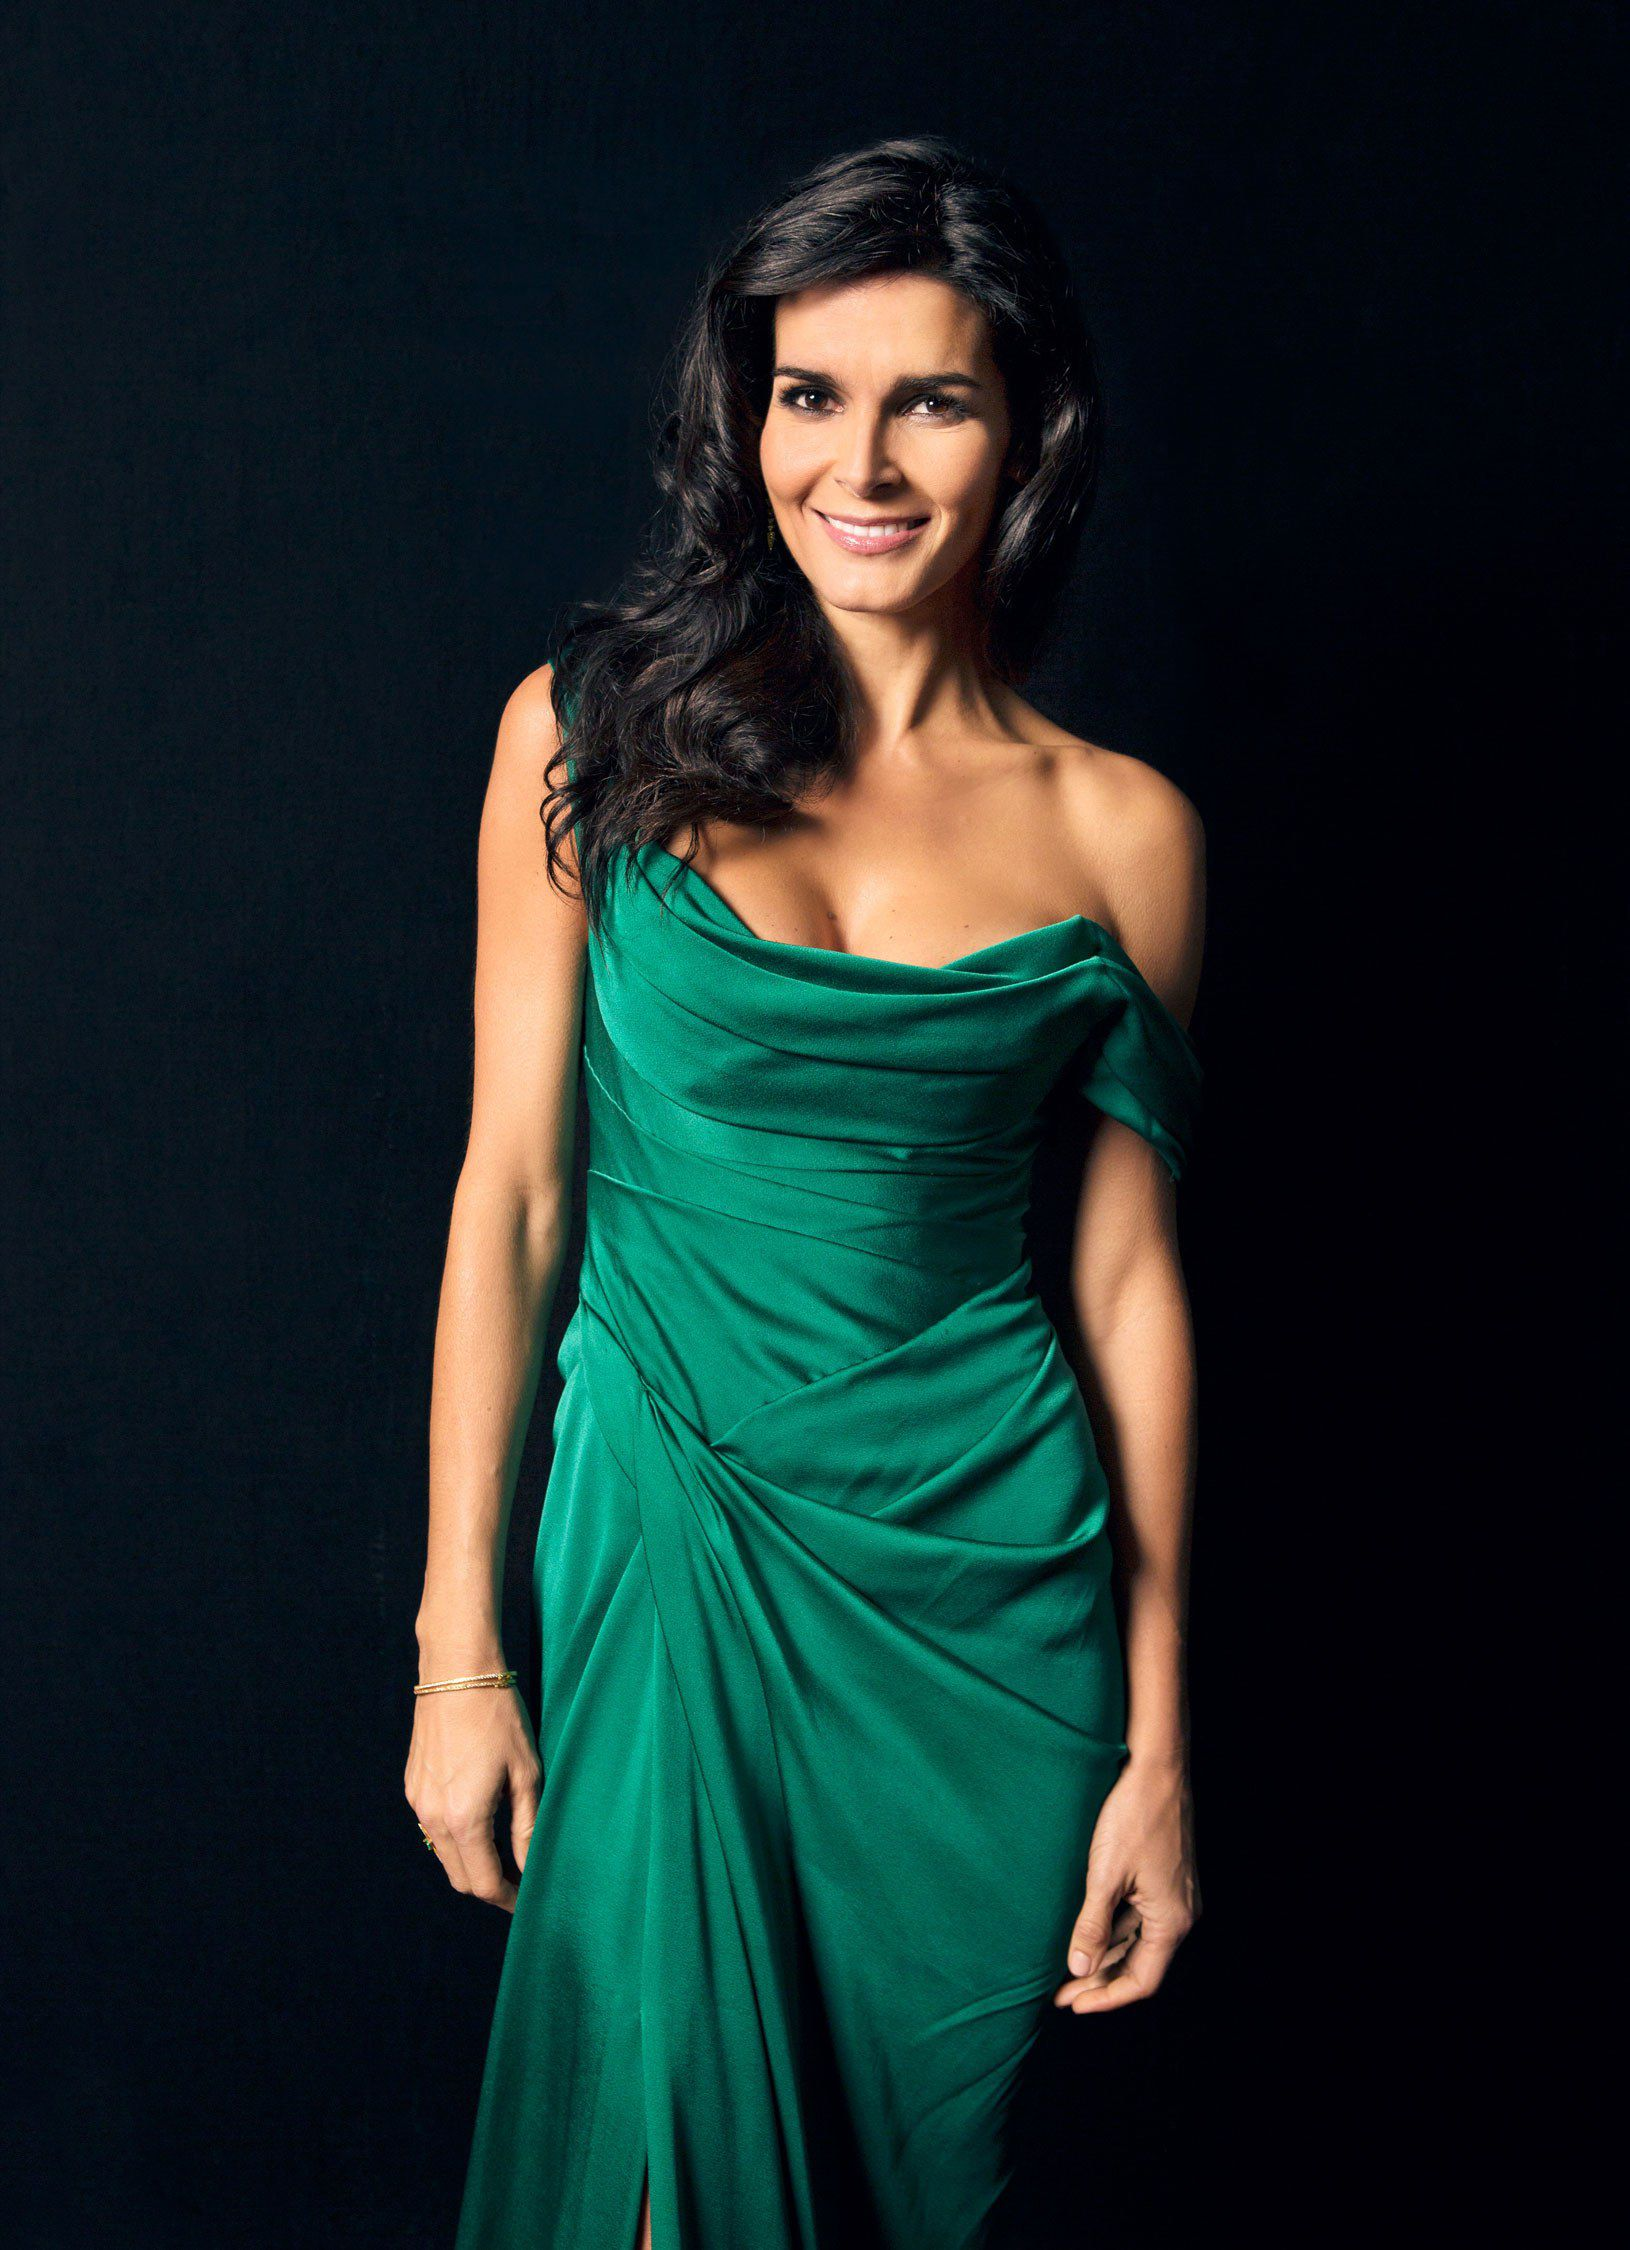 Angie Harmon in beautiful dress at black background